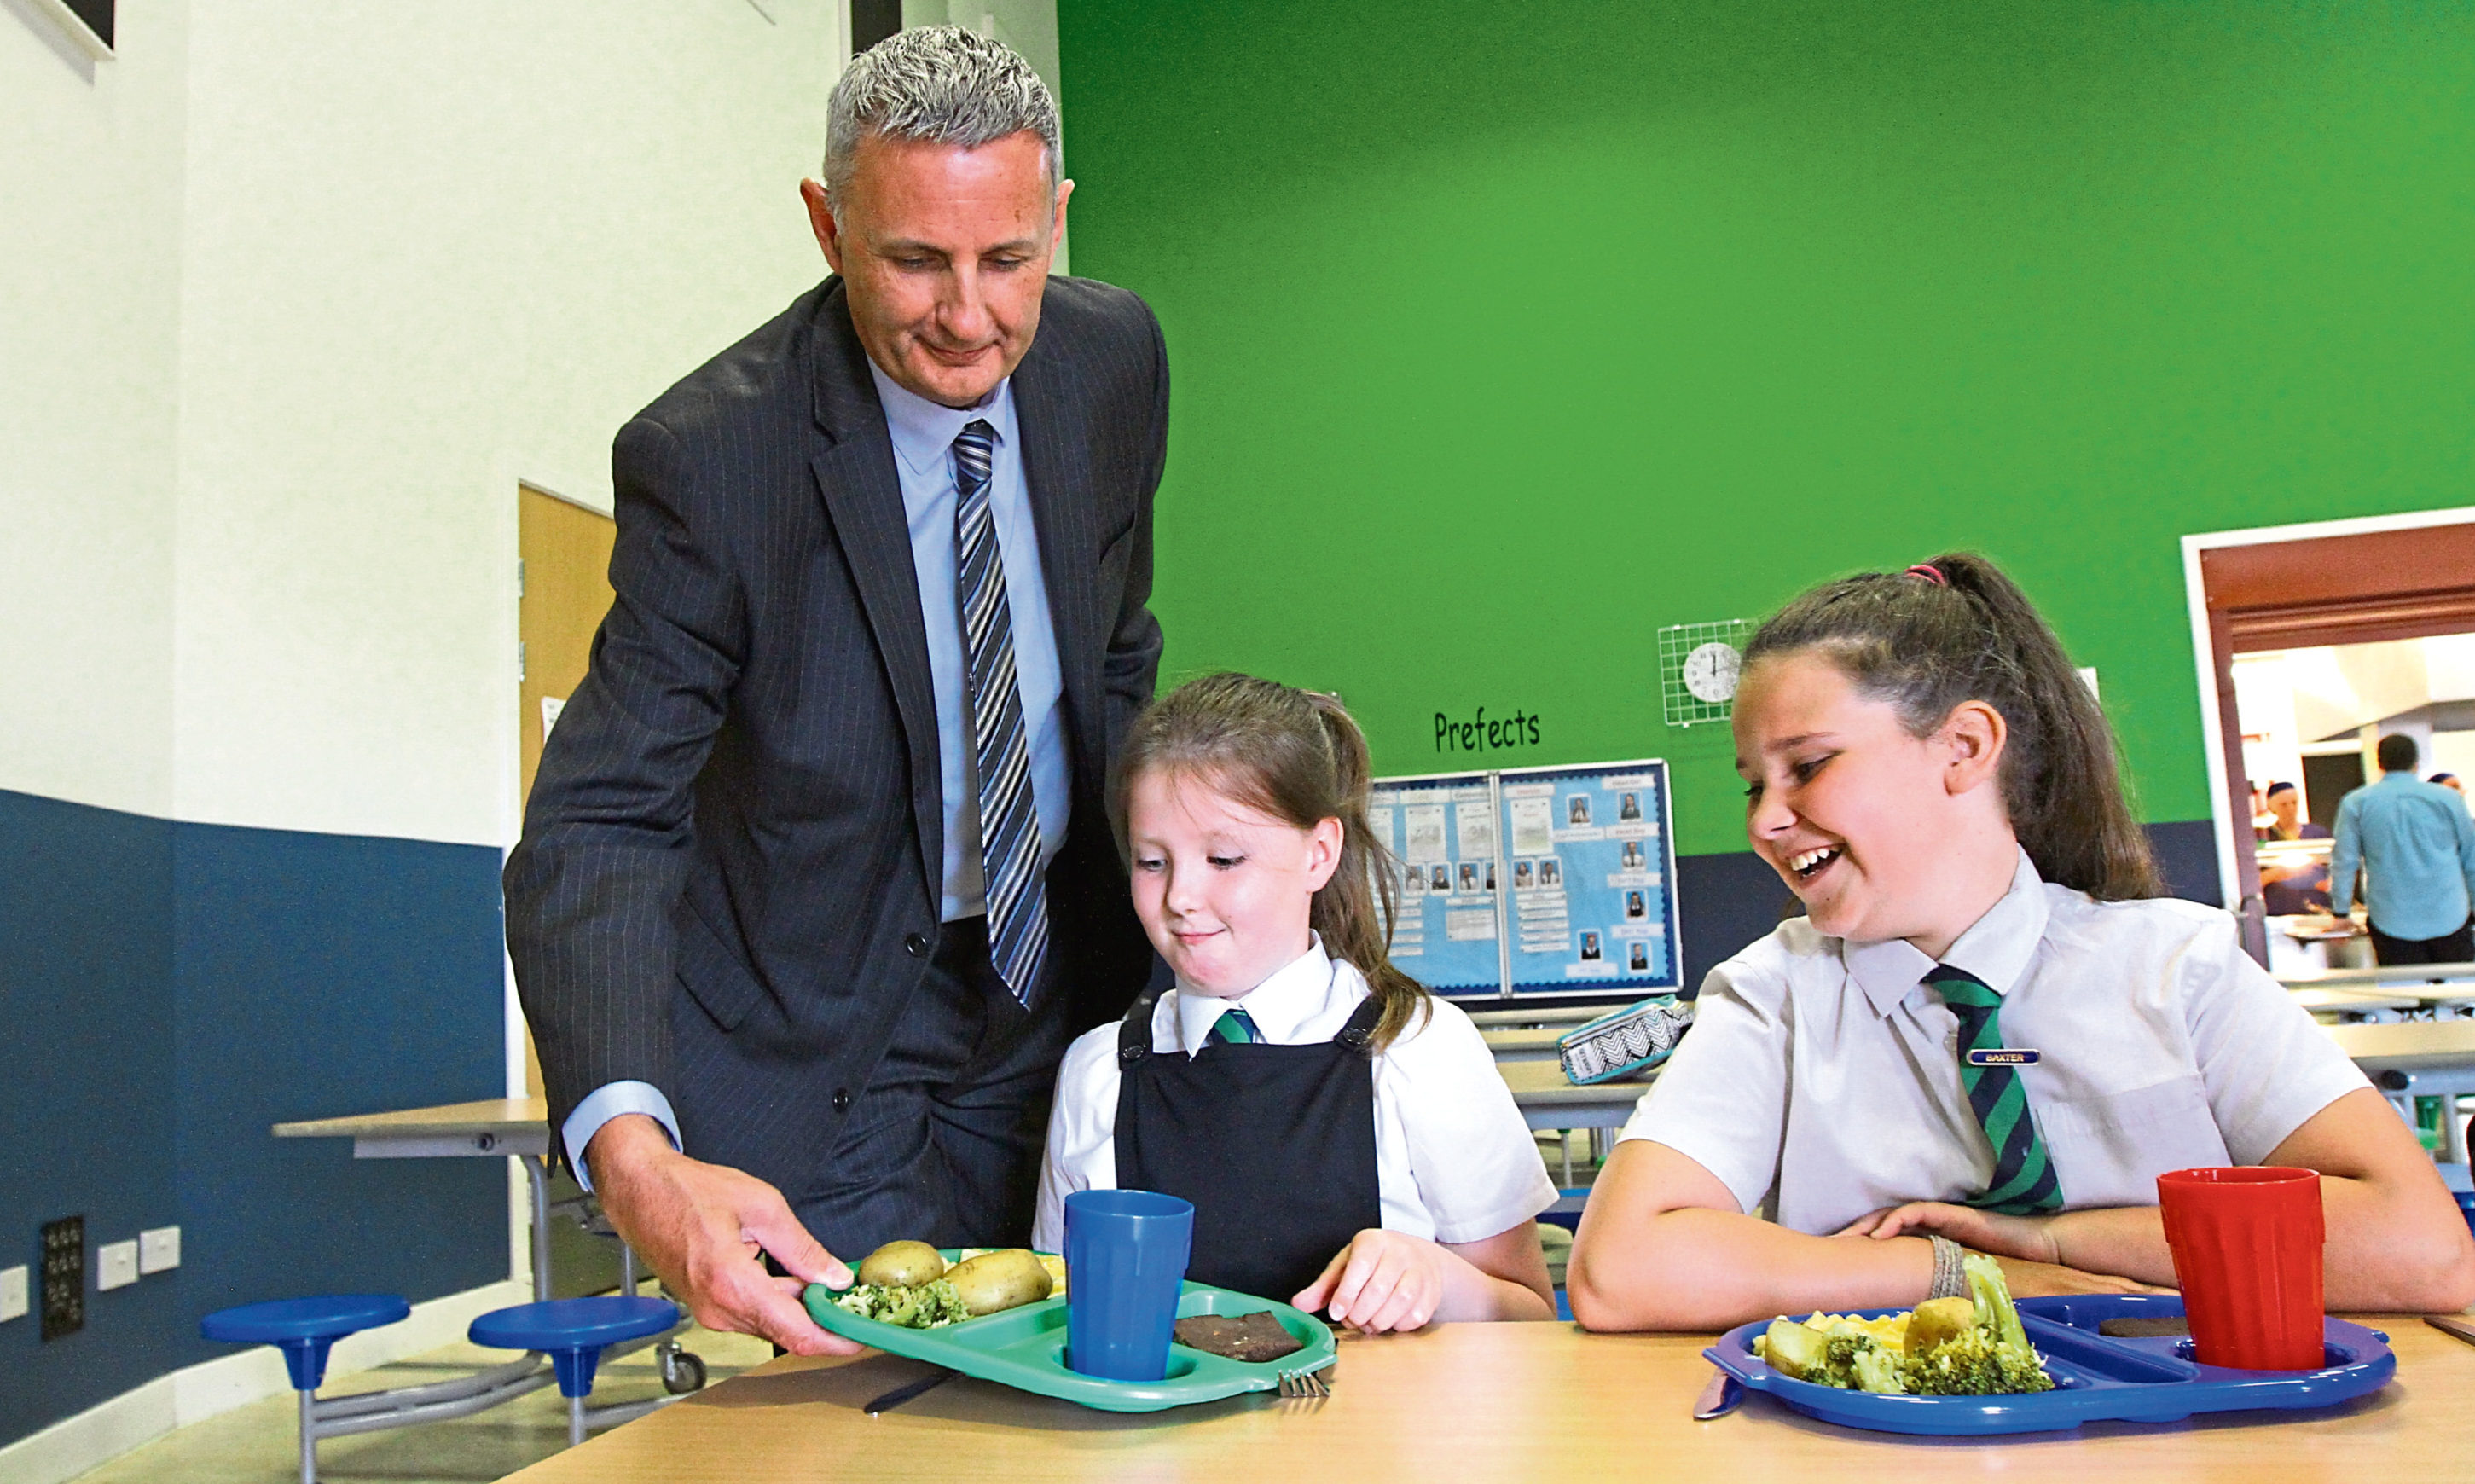 """The task of delivering meals to pupils once schools return full time in August will be """"challenging"""" according to Gary Conway"""